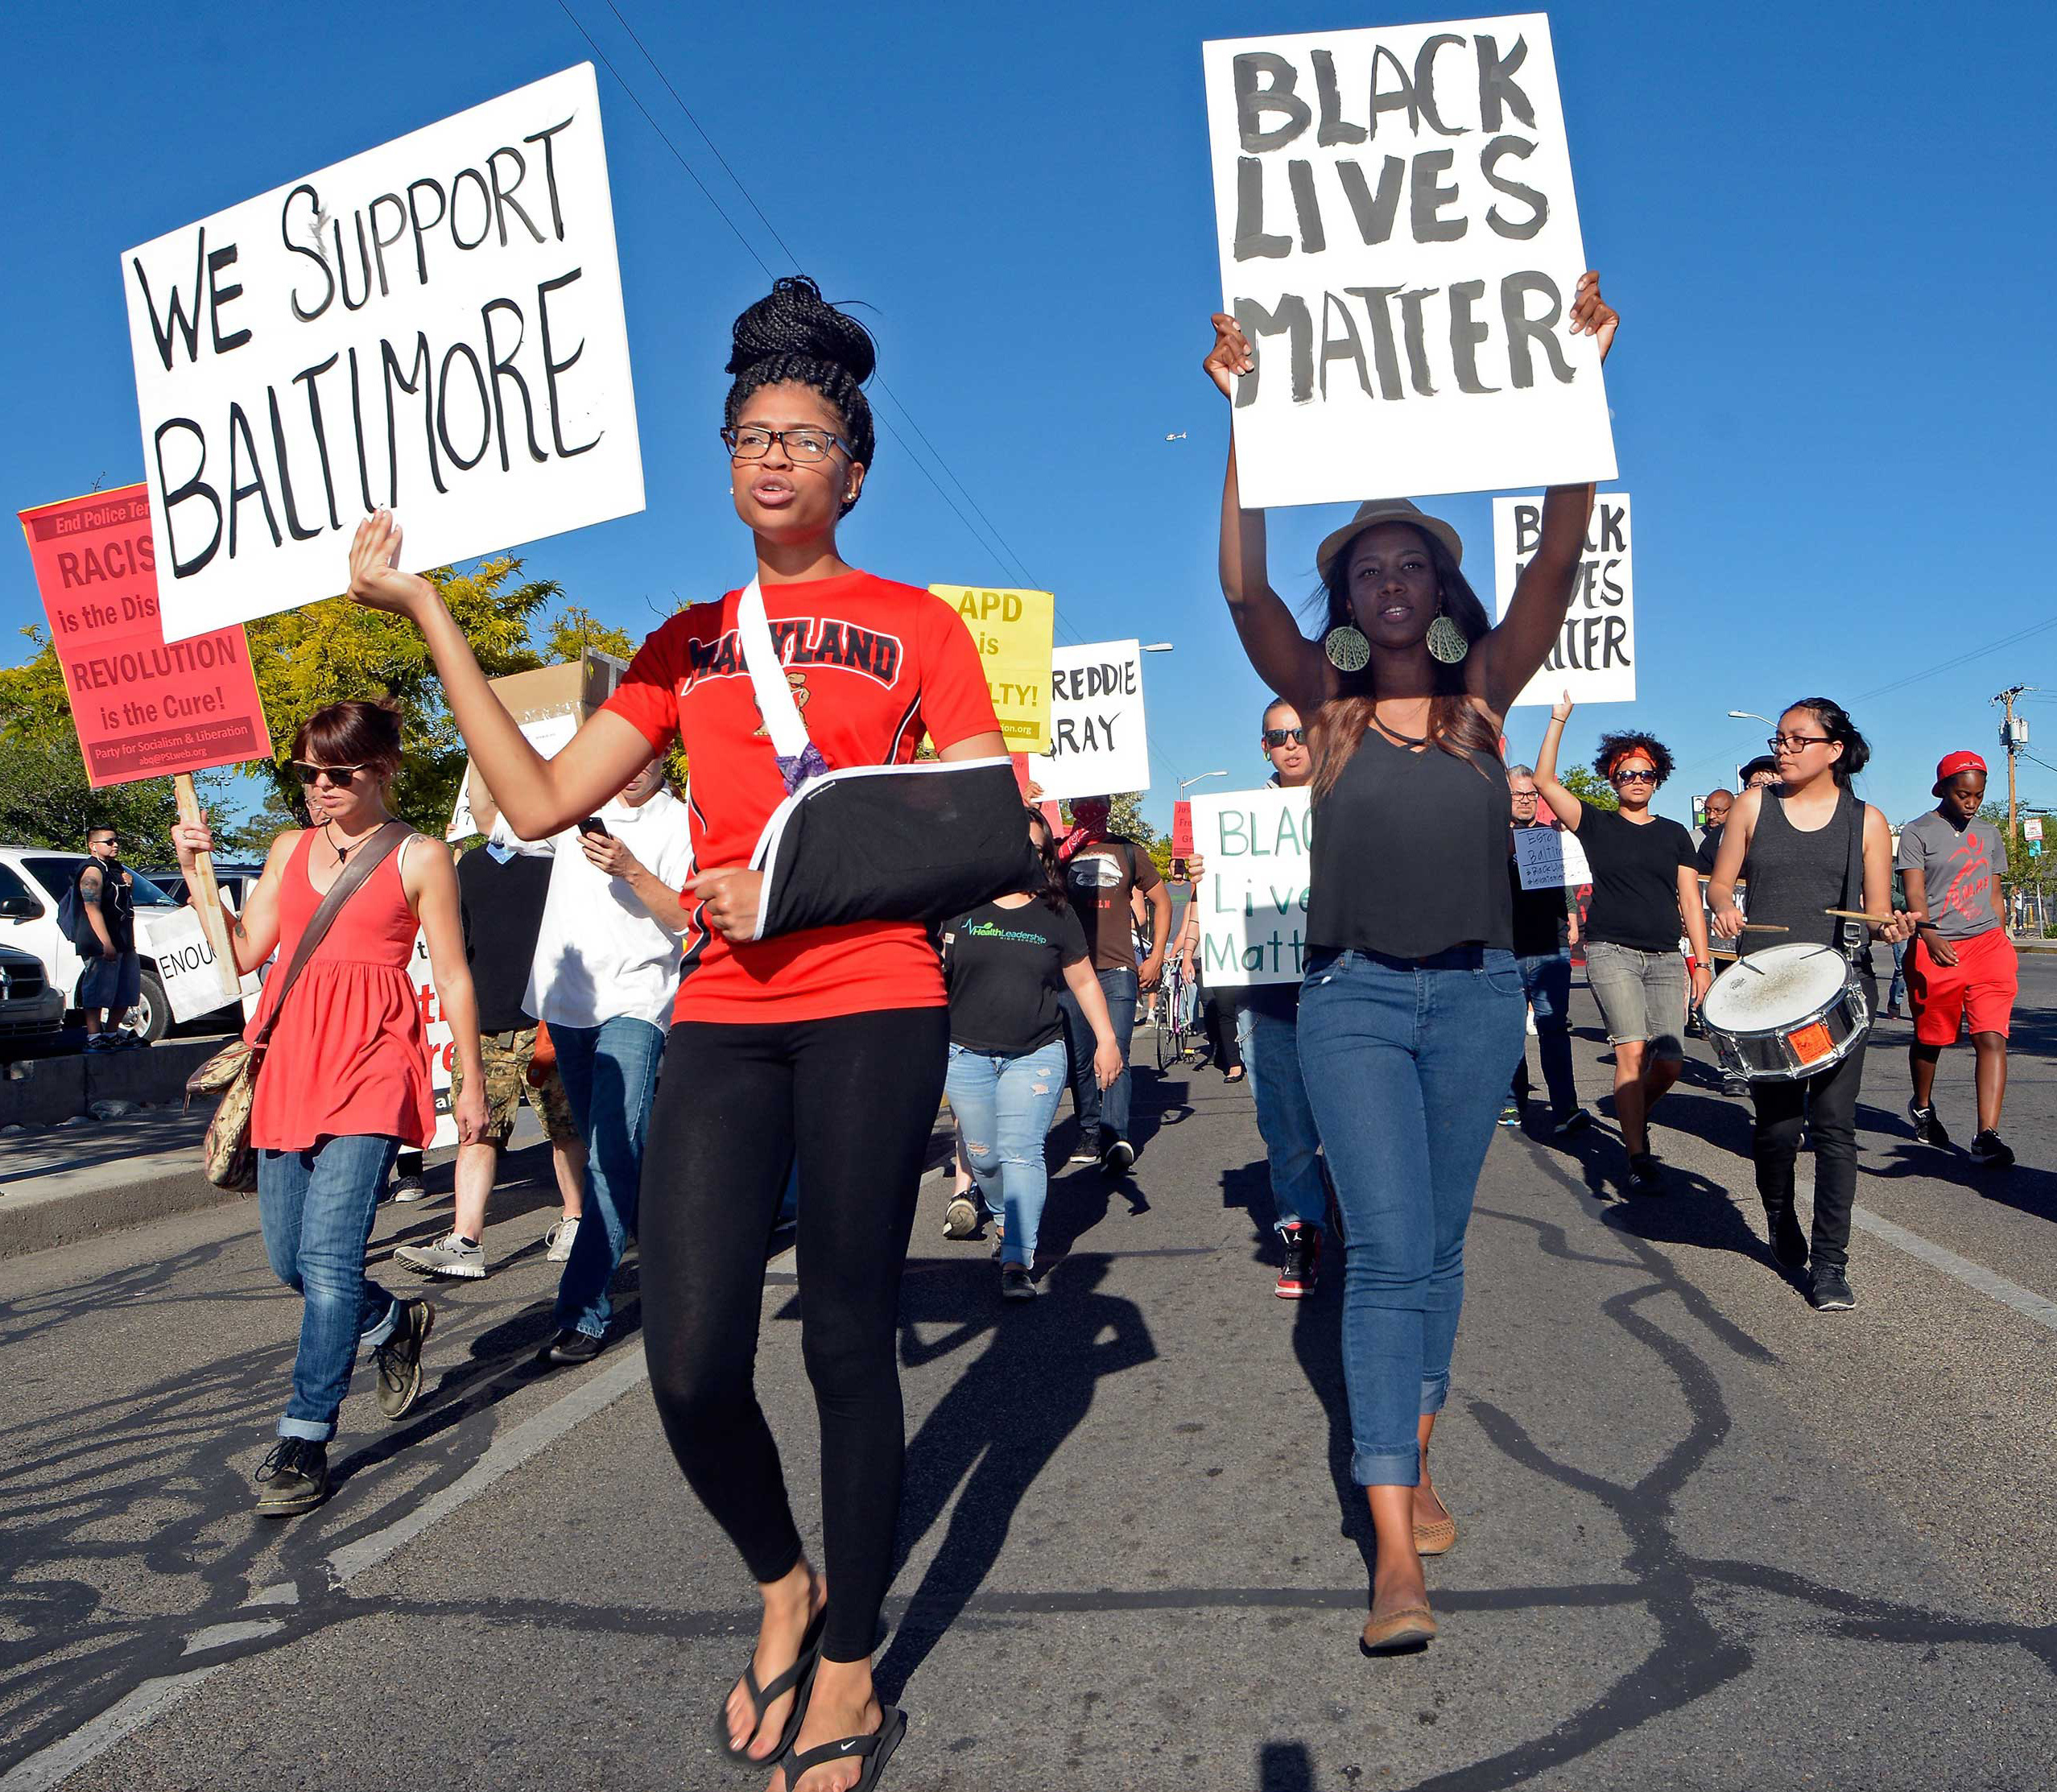 Cinnamon Burton and Skye Johnson join protesters, in solidarity with Baltimore, marching in front of the University of New Mexico in Albuquerque, N.M. on April 29, 2015.